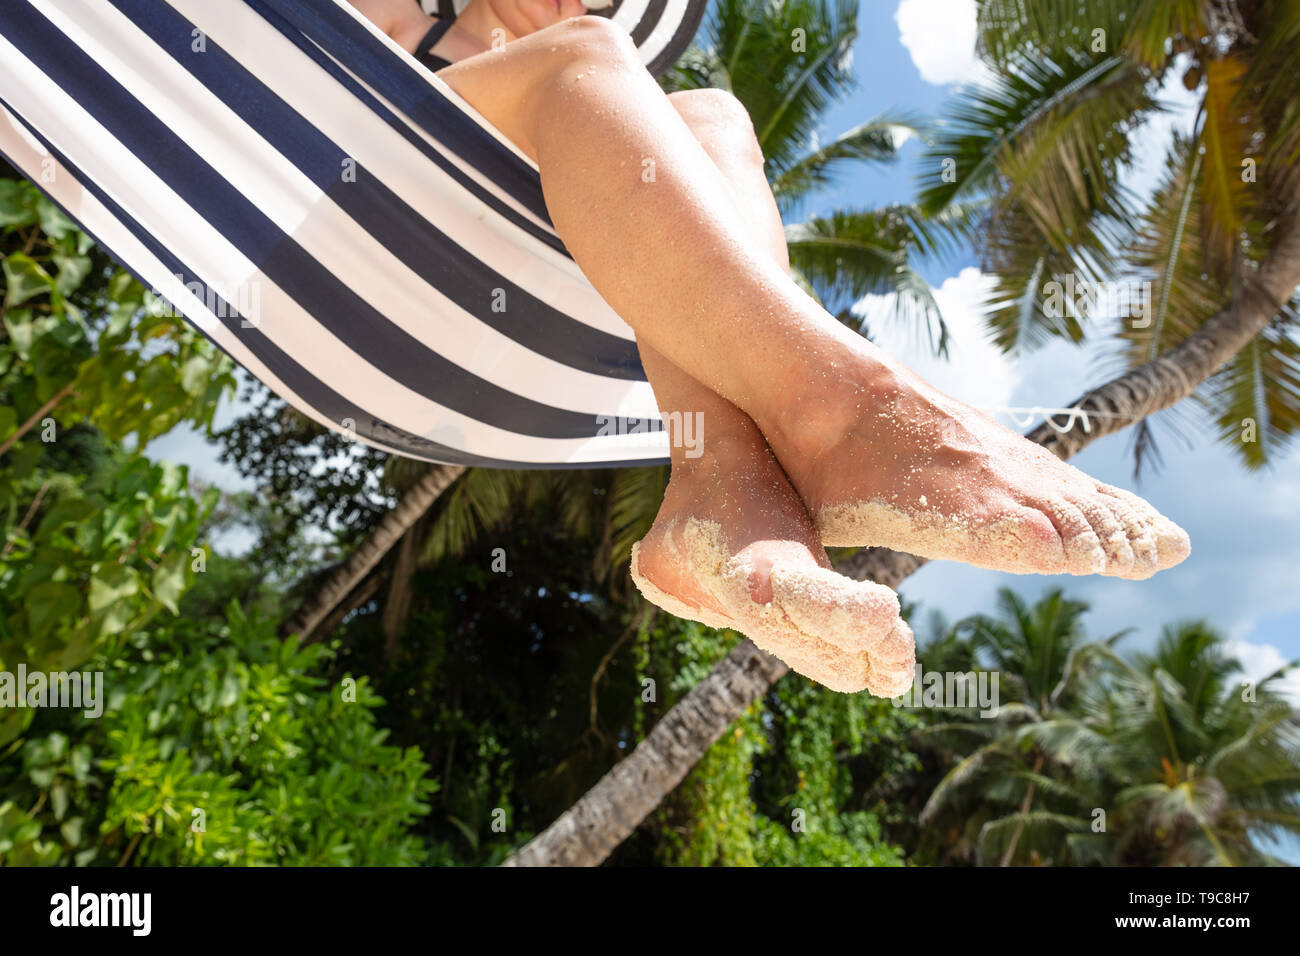 Low Angle View Of Sand On Woman's Feet Sitting On Hammock At Beach - Stock Image